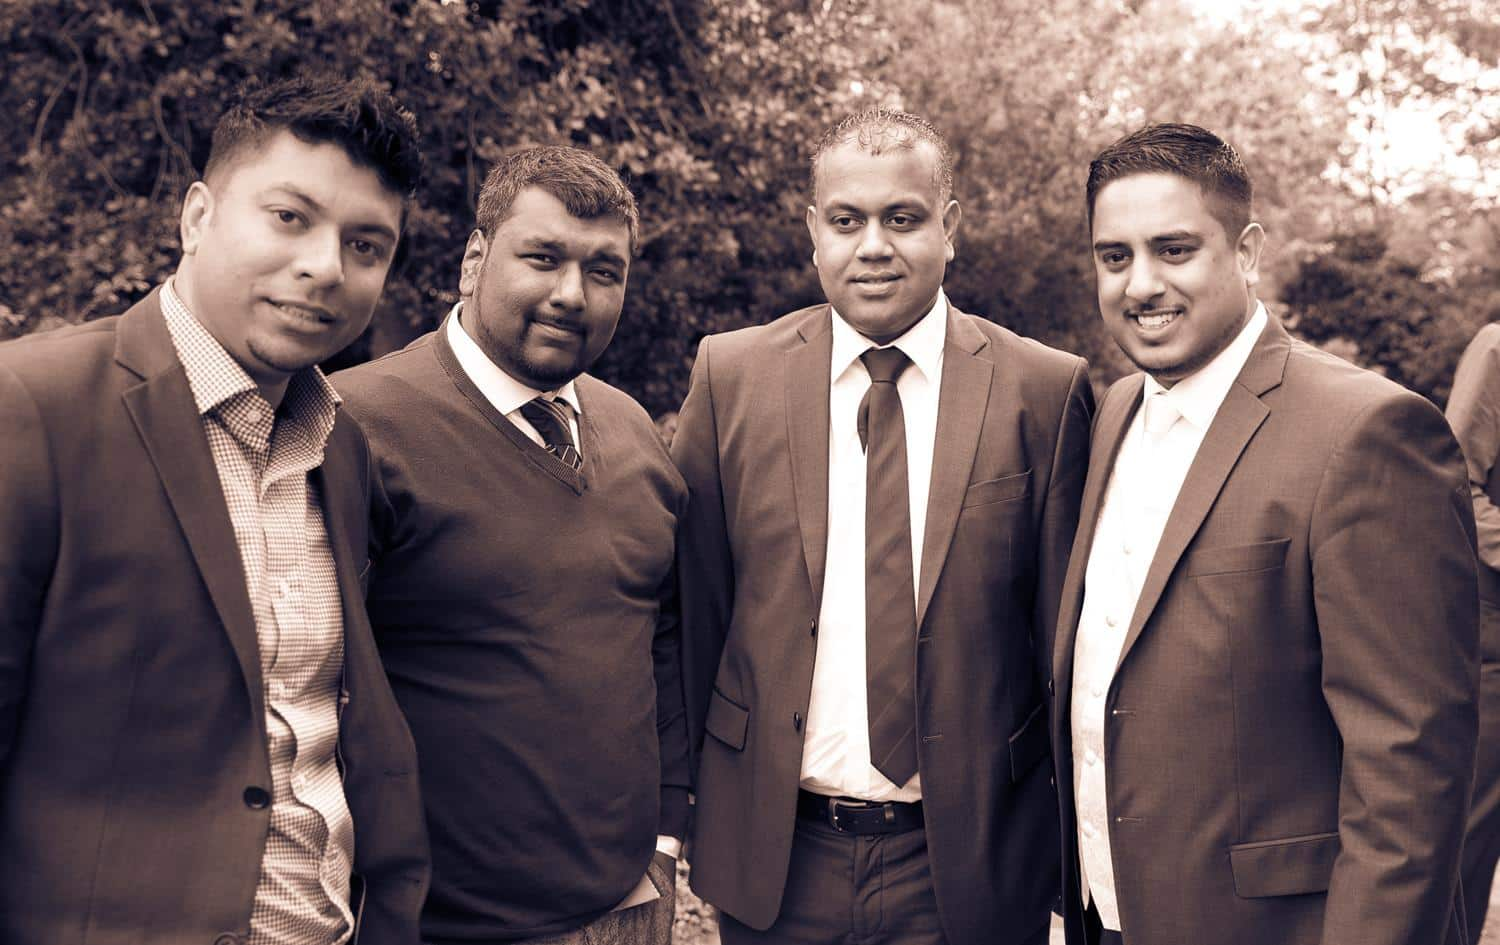 Tan brown Registry Photography of groom and friends by MAKSAM Photography